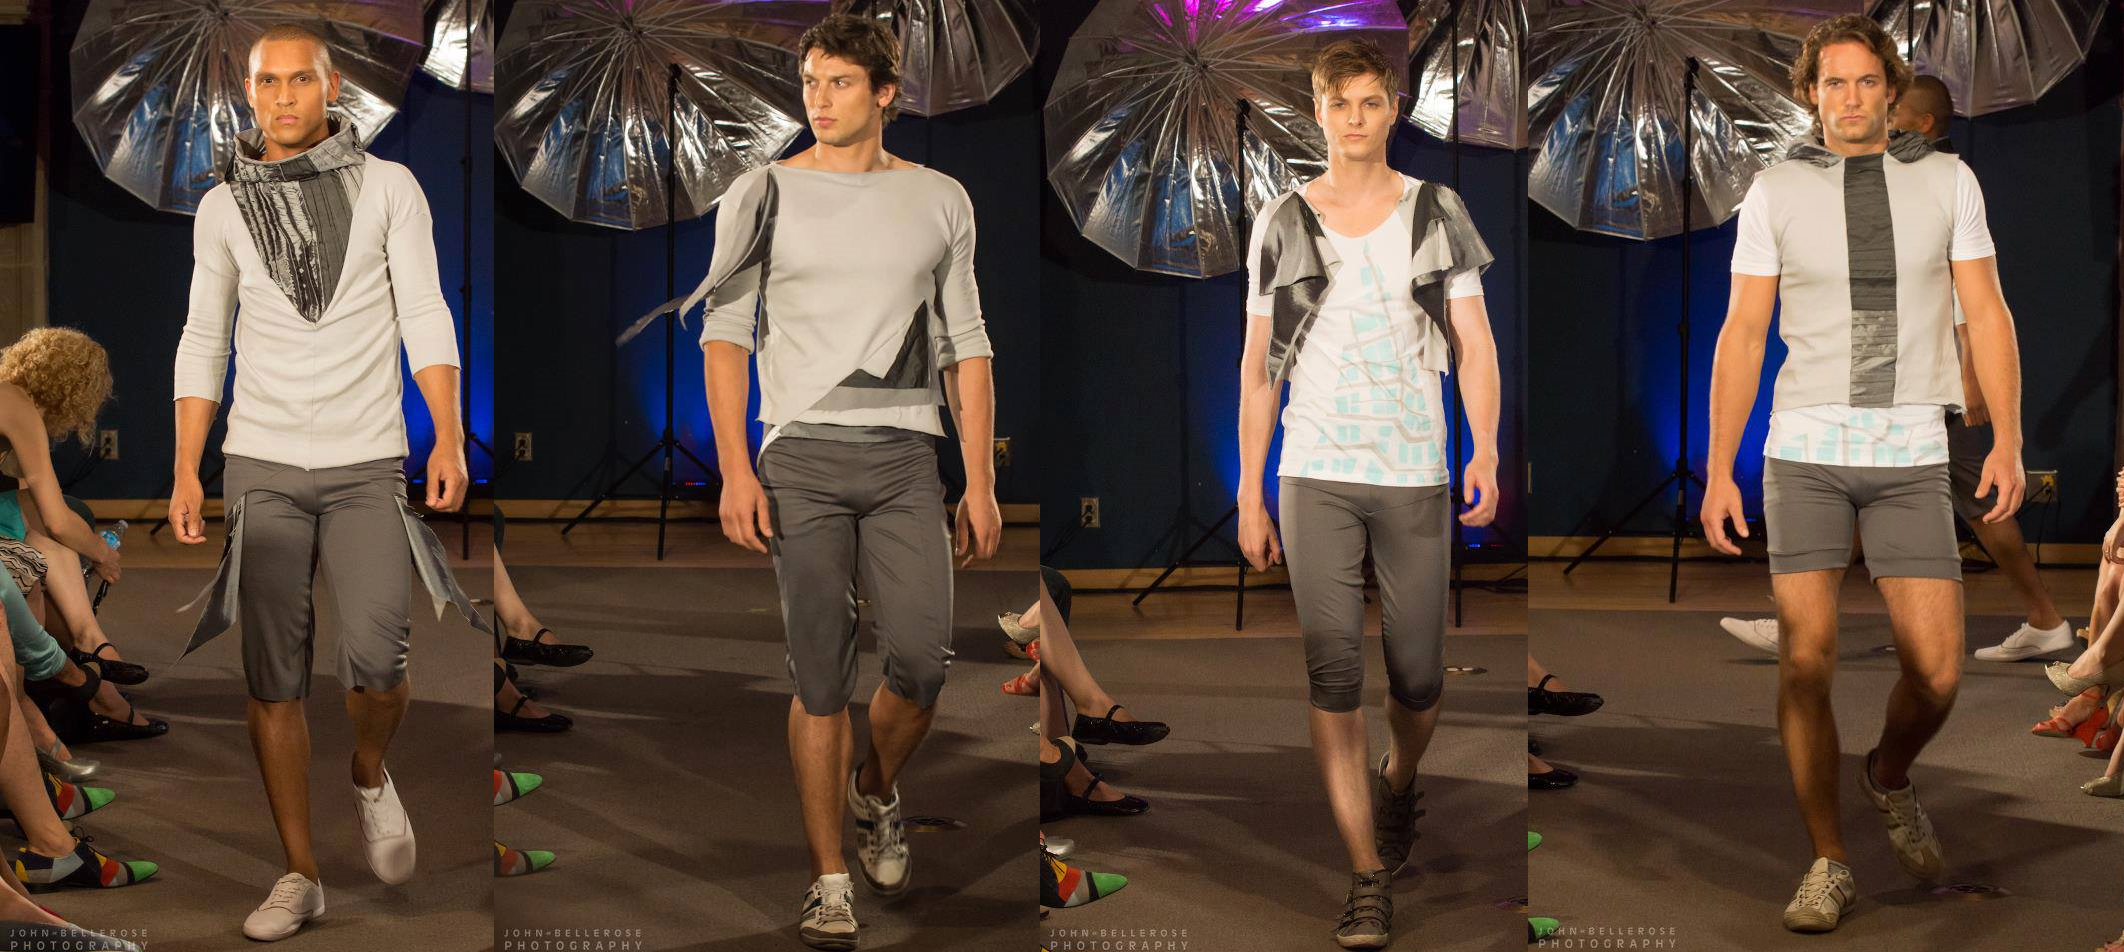 Menswear made from recycled fabrics